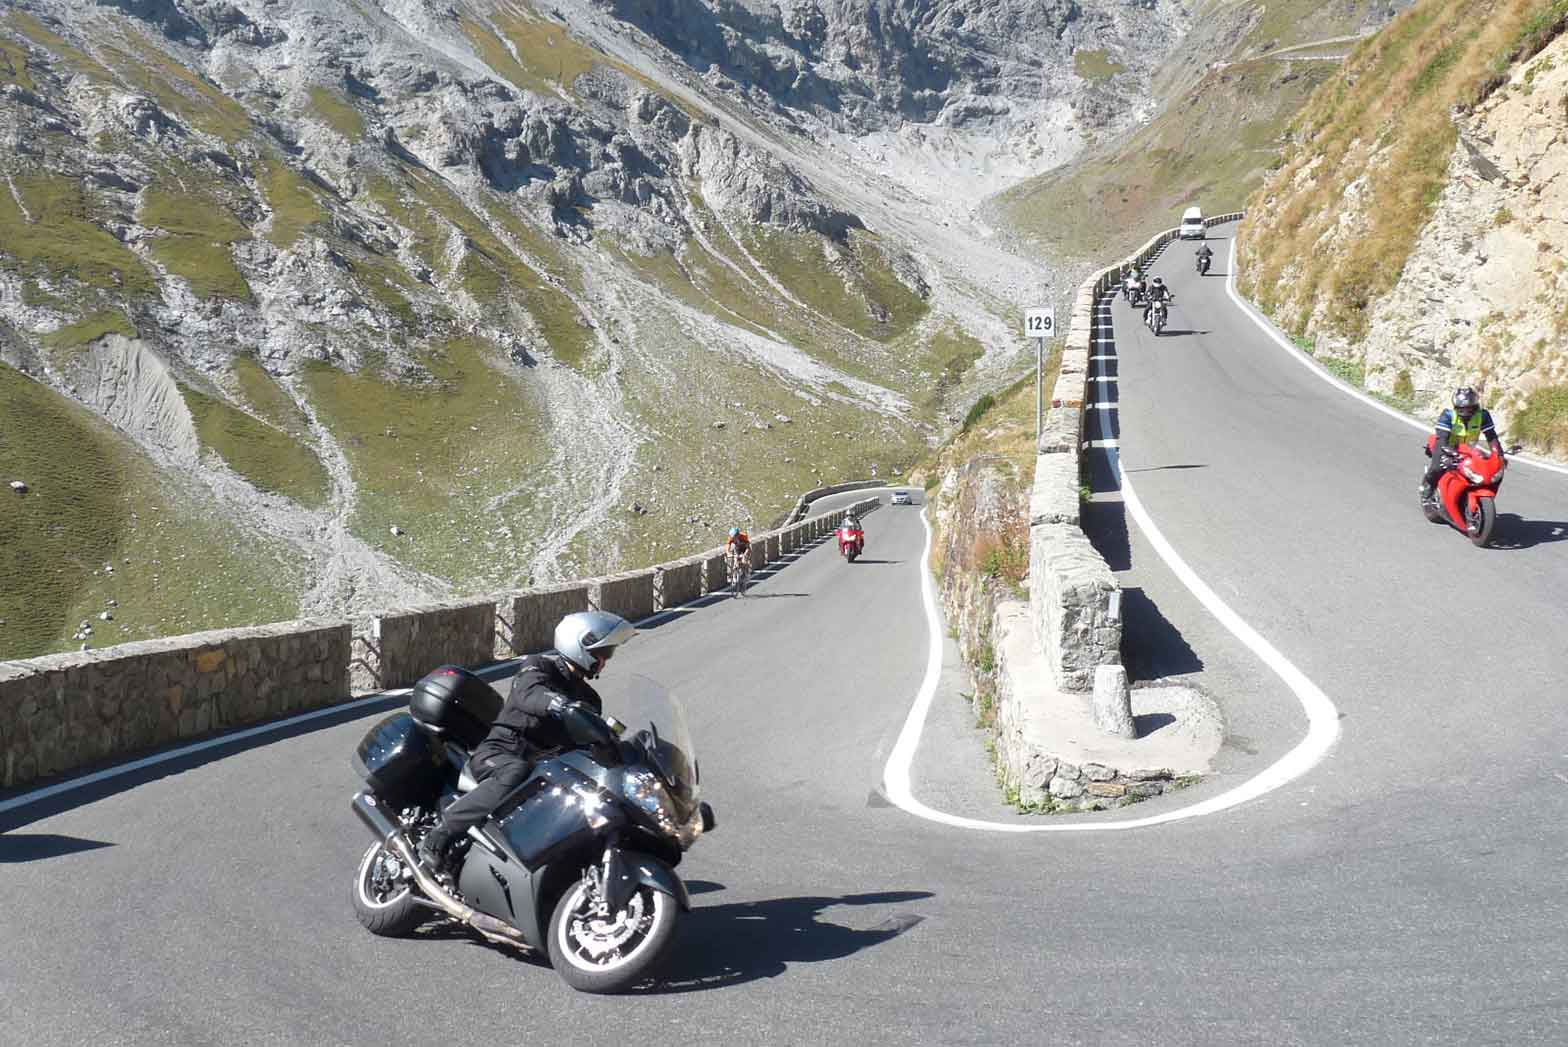 Hairpin turns, Indian Summer in the Alps